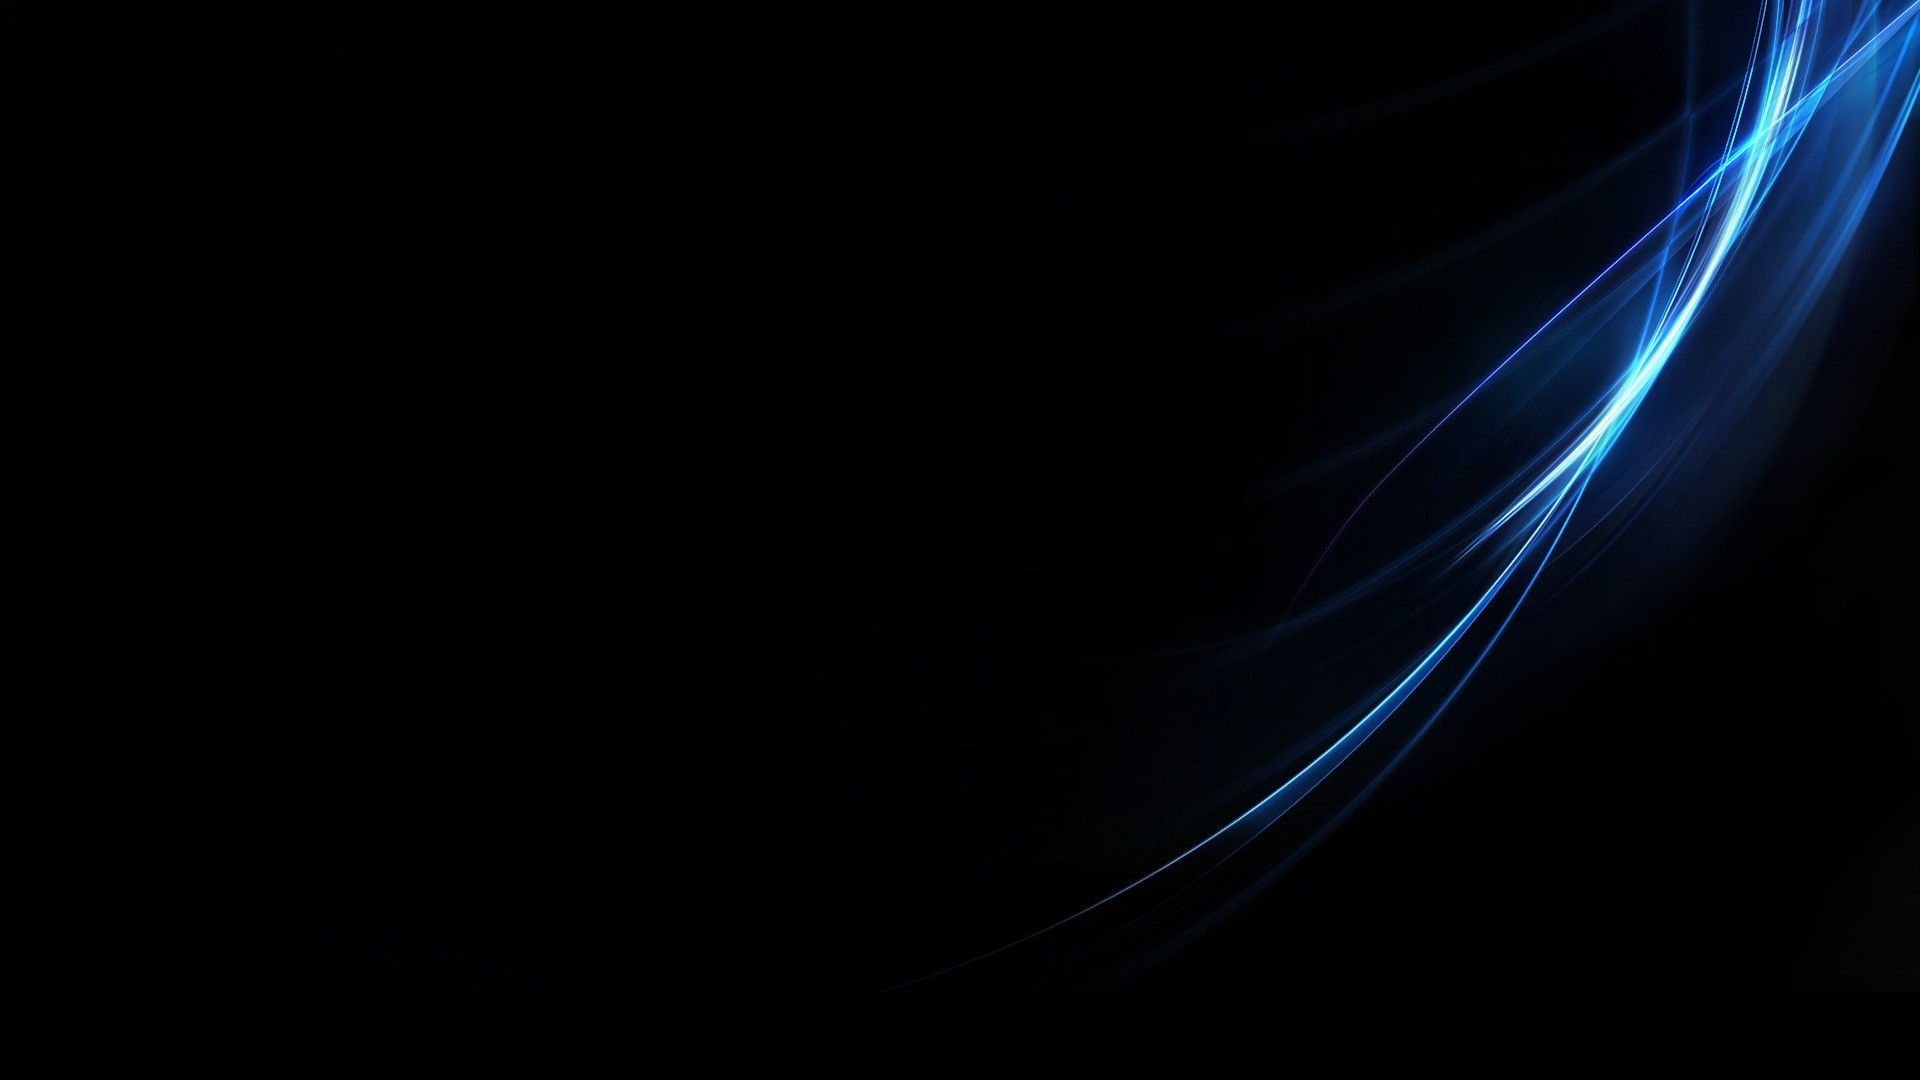 Black And Blue Wallpapers 1